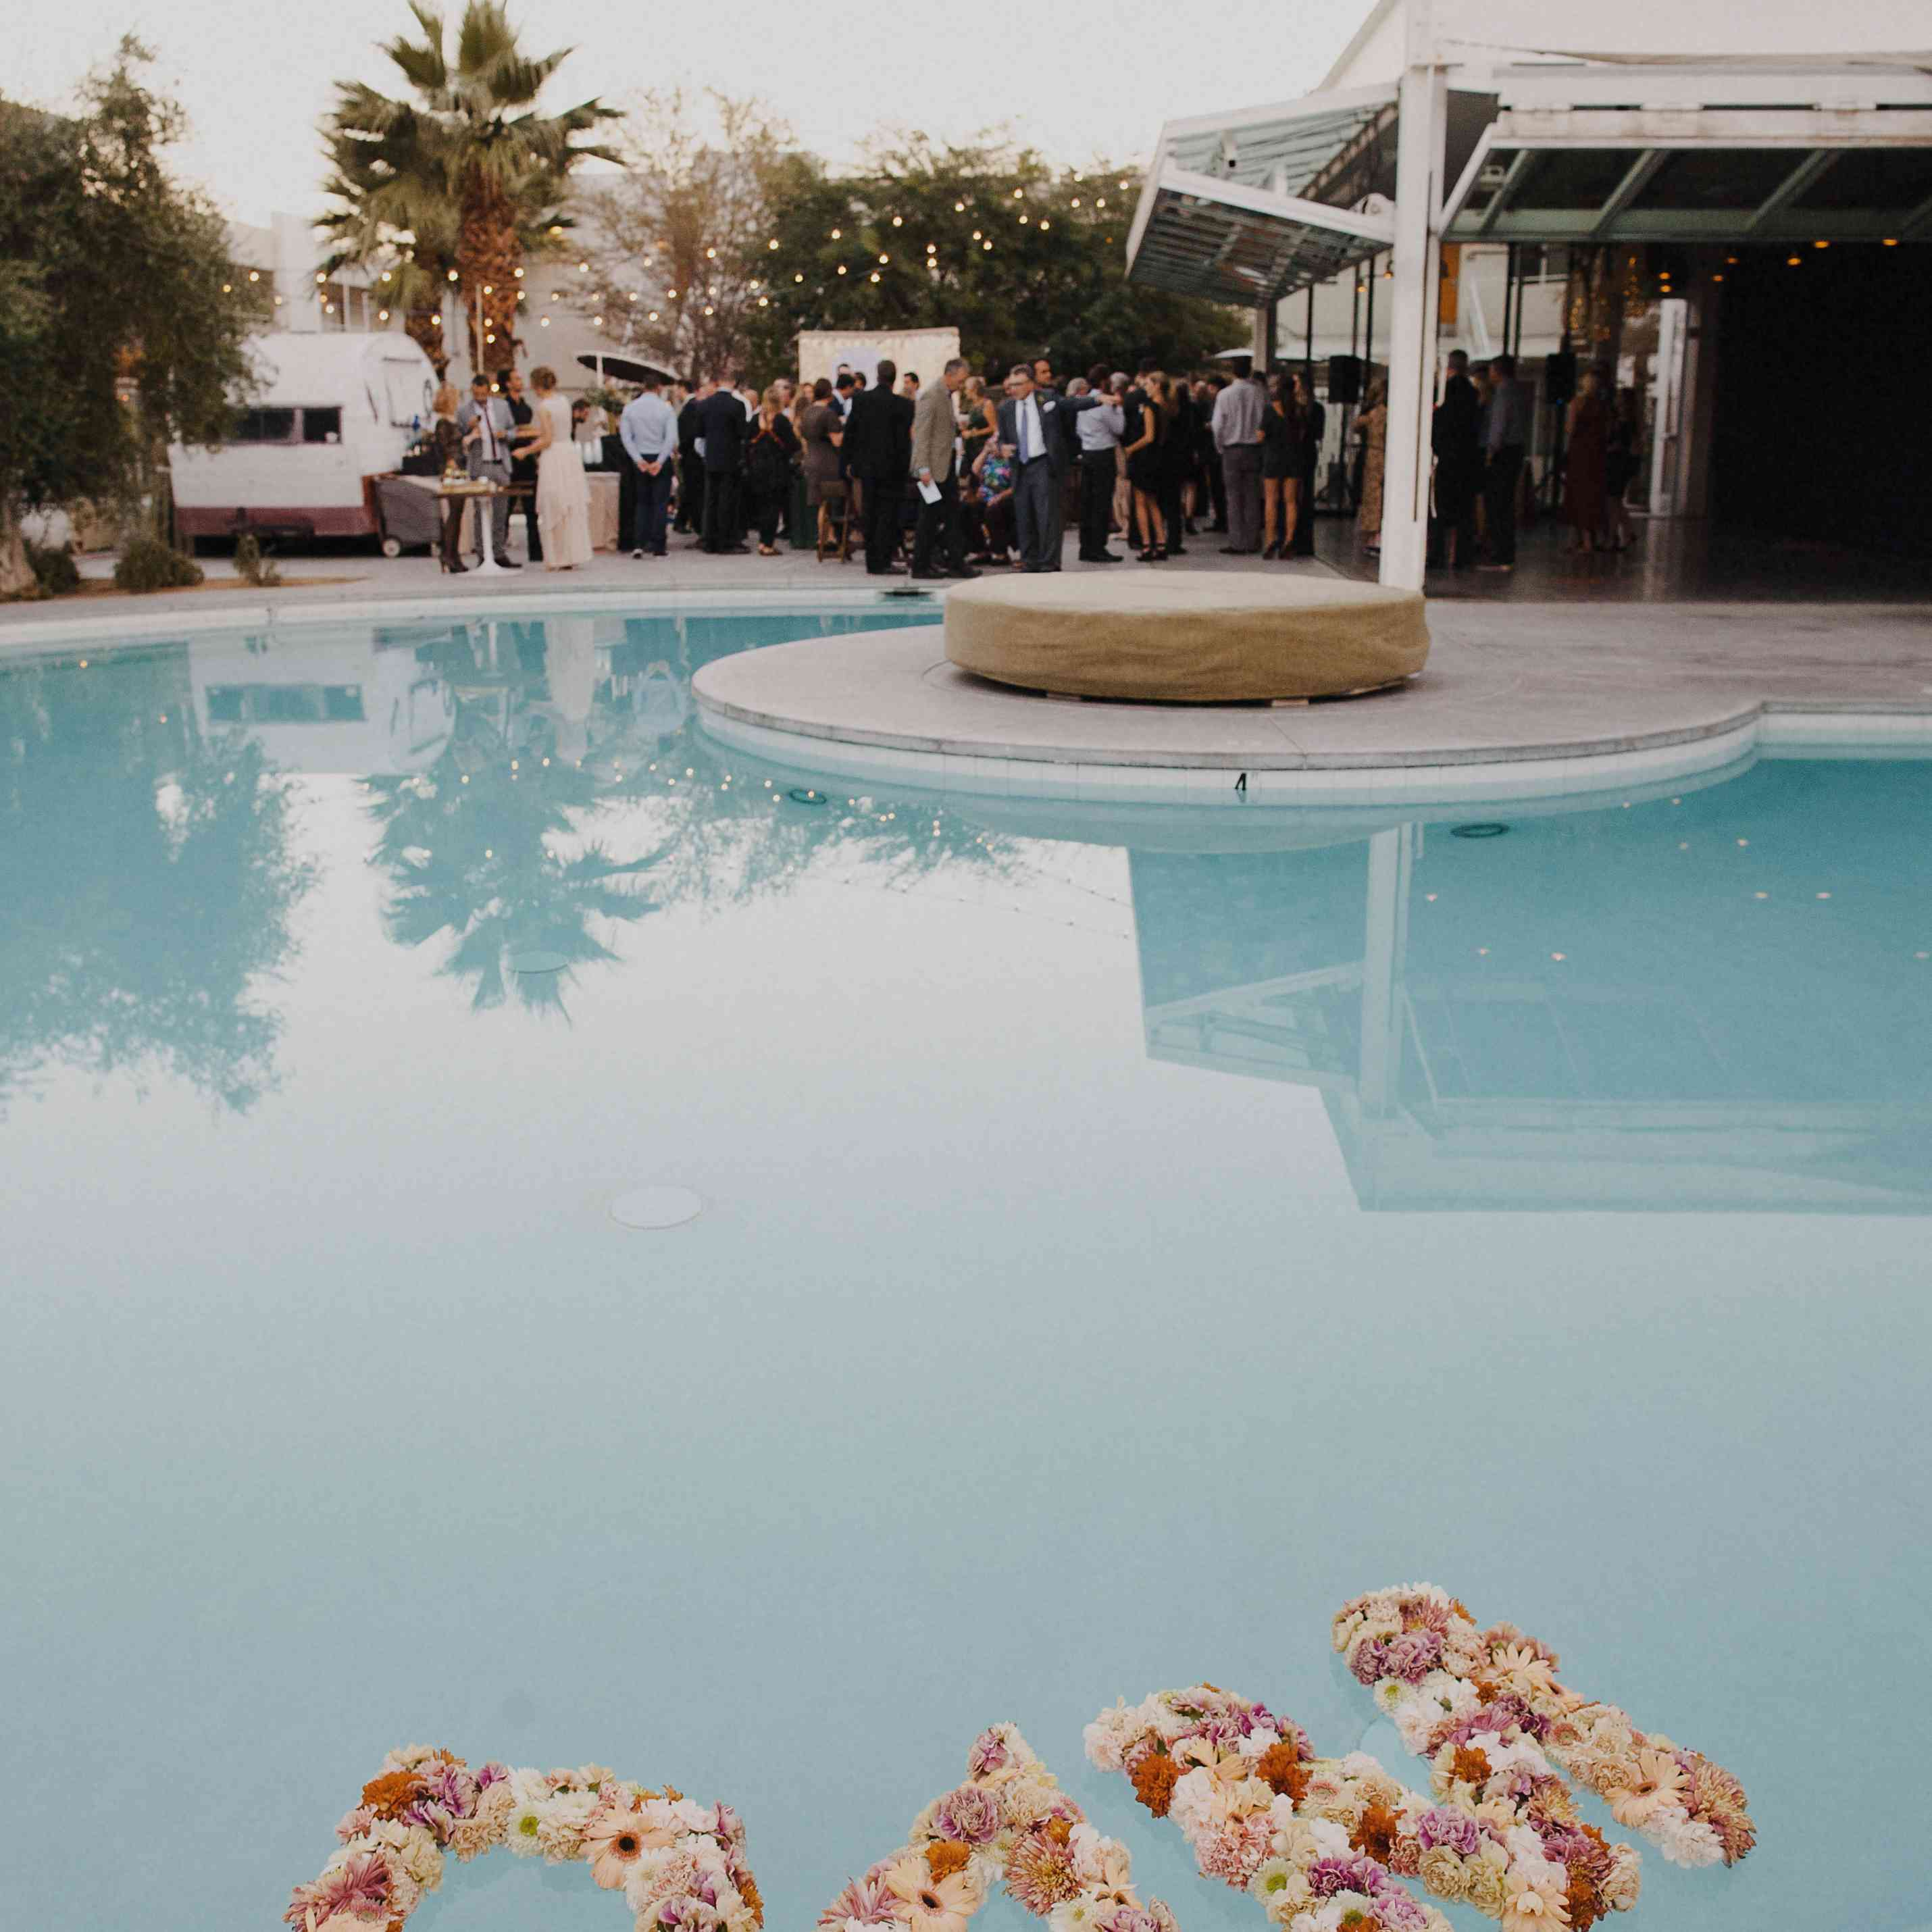 The letters D A M made of flowers floating in a pool at a wedding reception